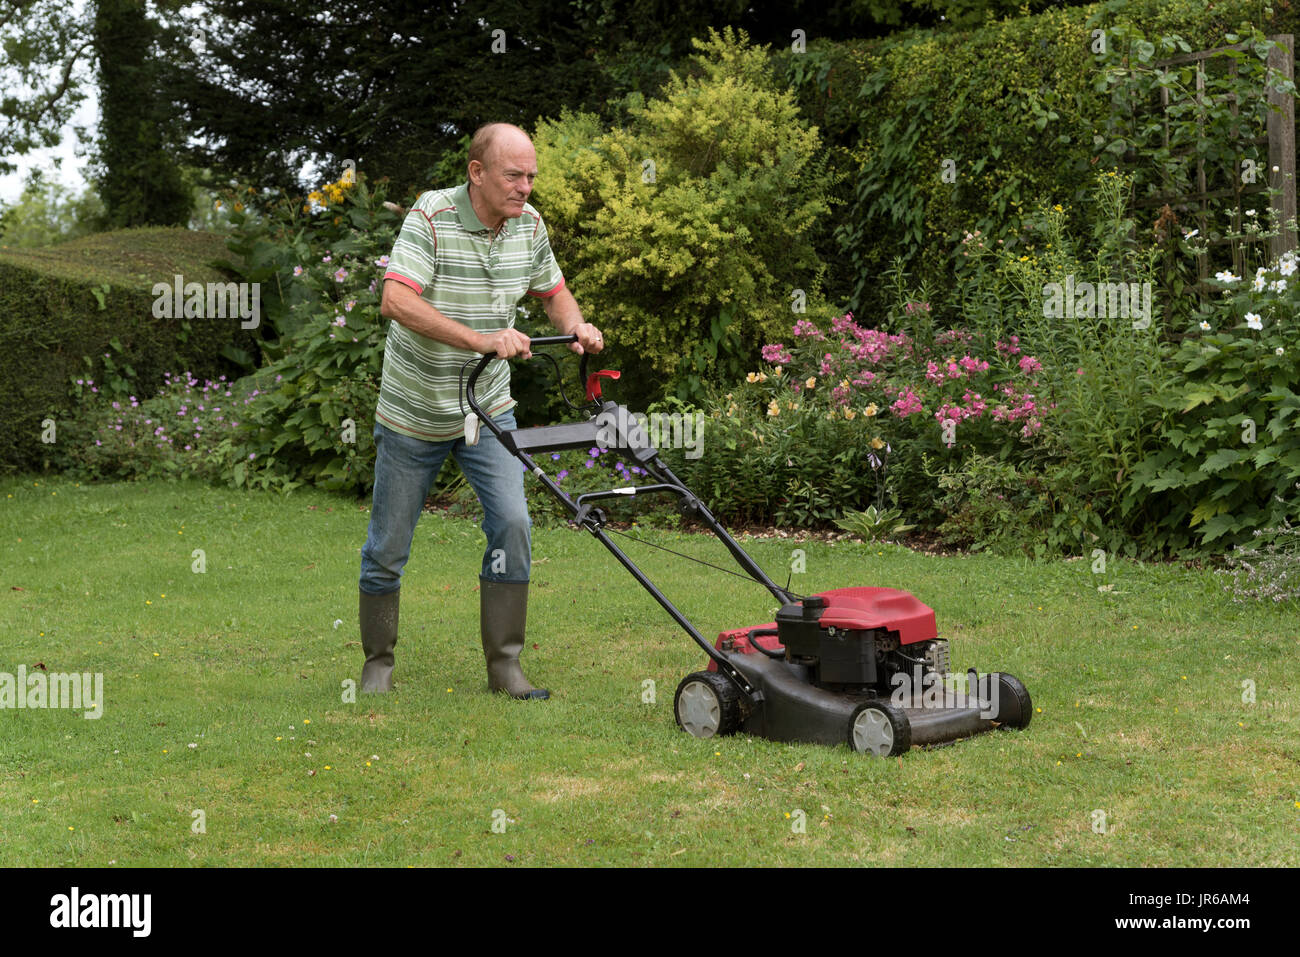 Man mowing lawn stock photos man mowing lawn stock for Lawn mower cutting grass